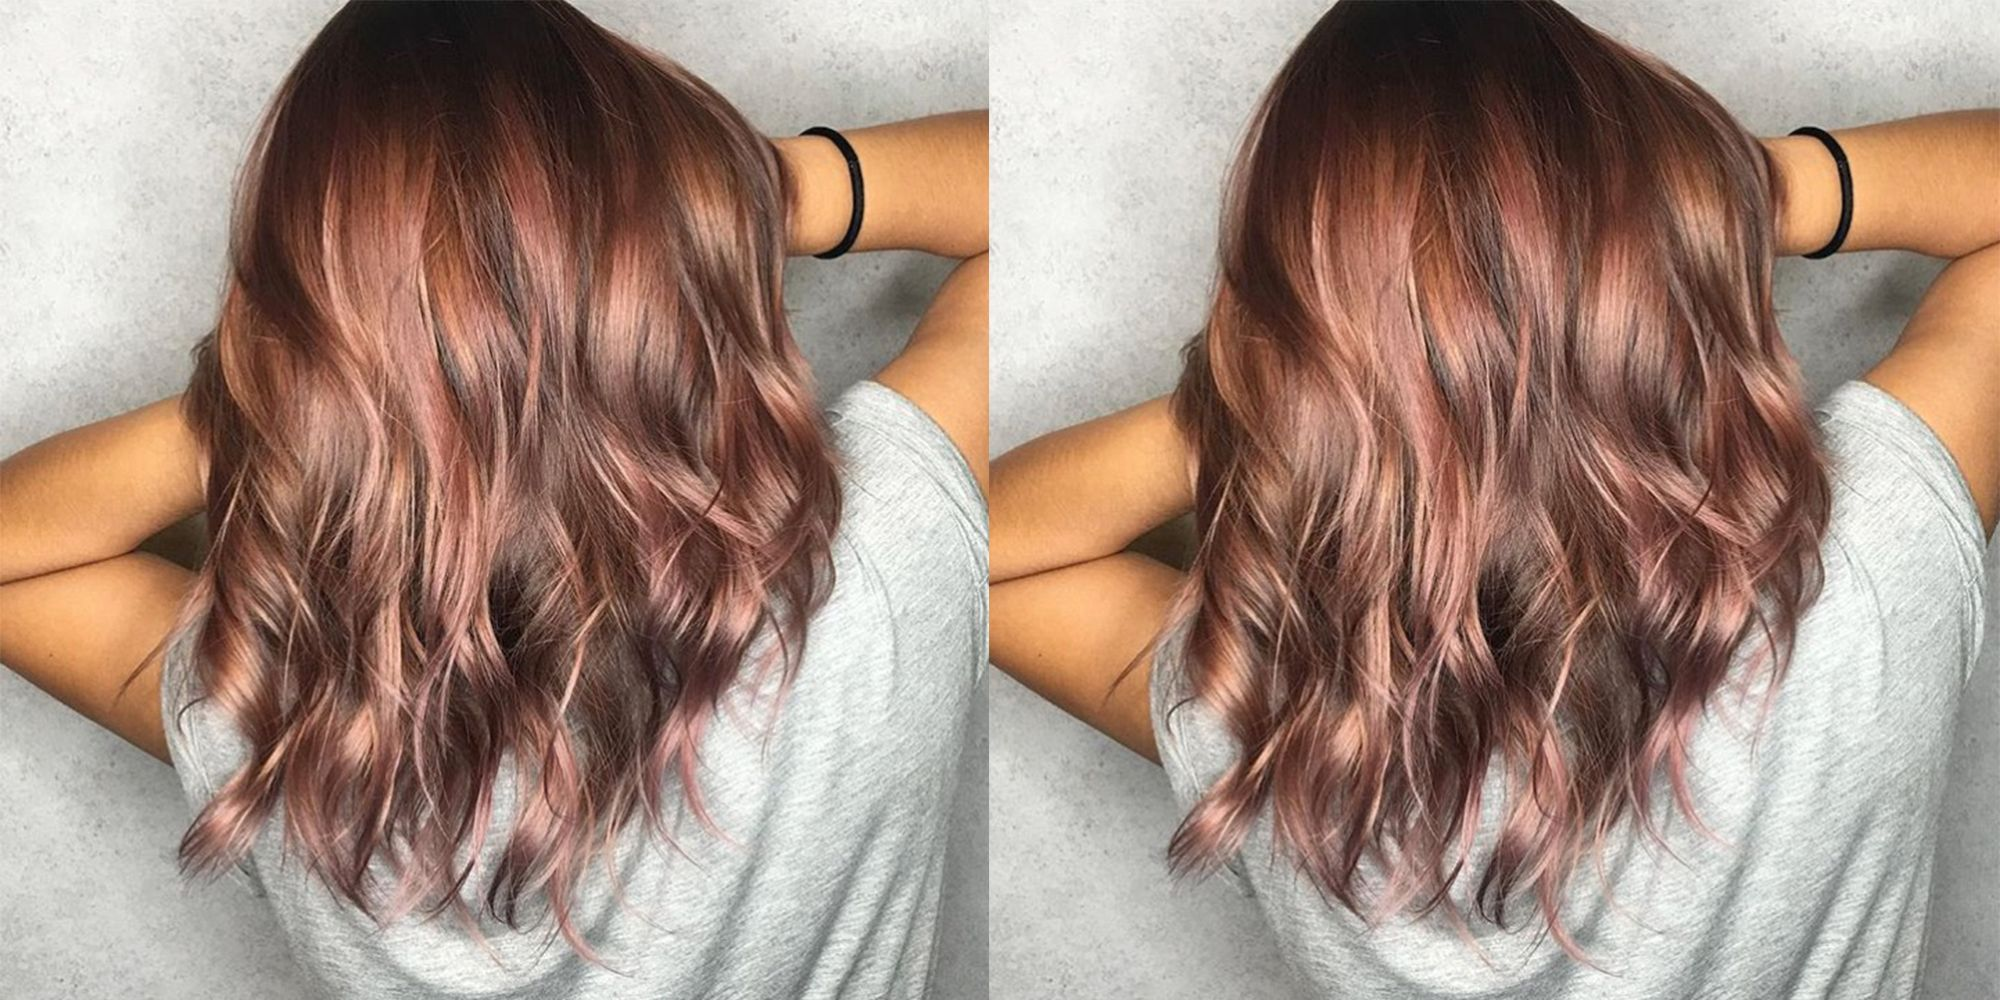 Long Bob Ombre Braun Rose Brown Hair Is The 2018 Pastel Hair Trend That S Brunette Friendly